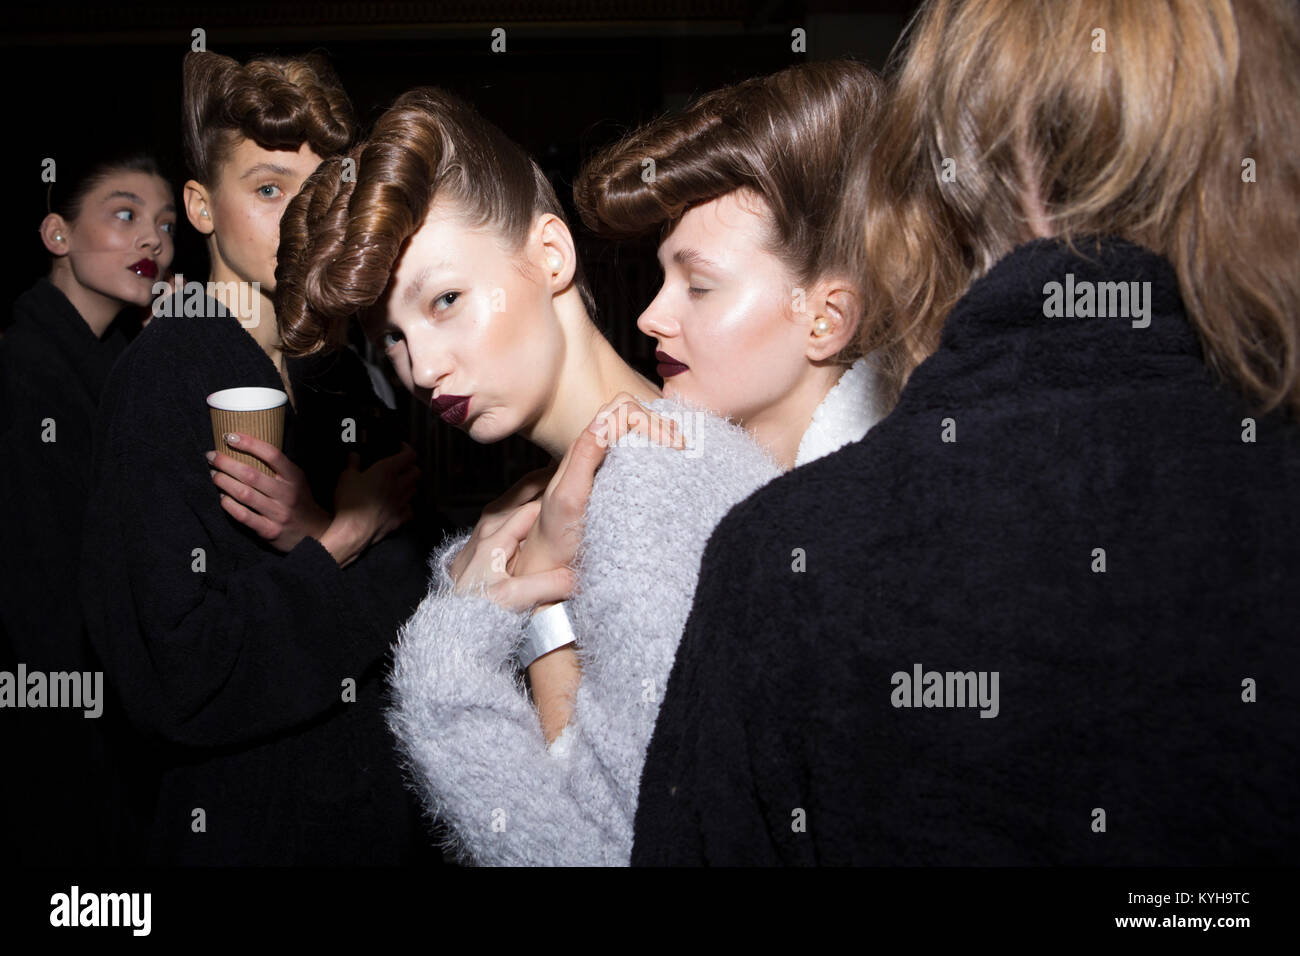 London, UK, 20 February 2016, Models backstage at the Gareth Pugh show for AW/16 collection at London Fashion Week - Stock Image